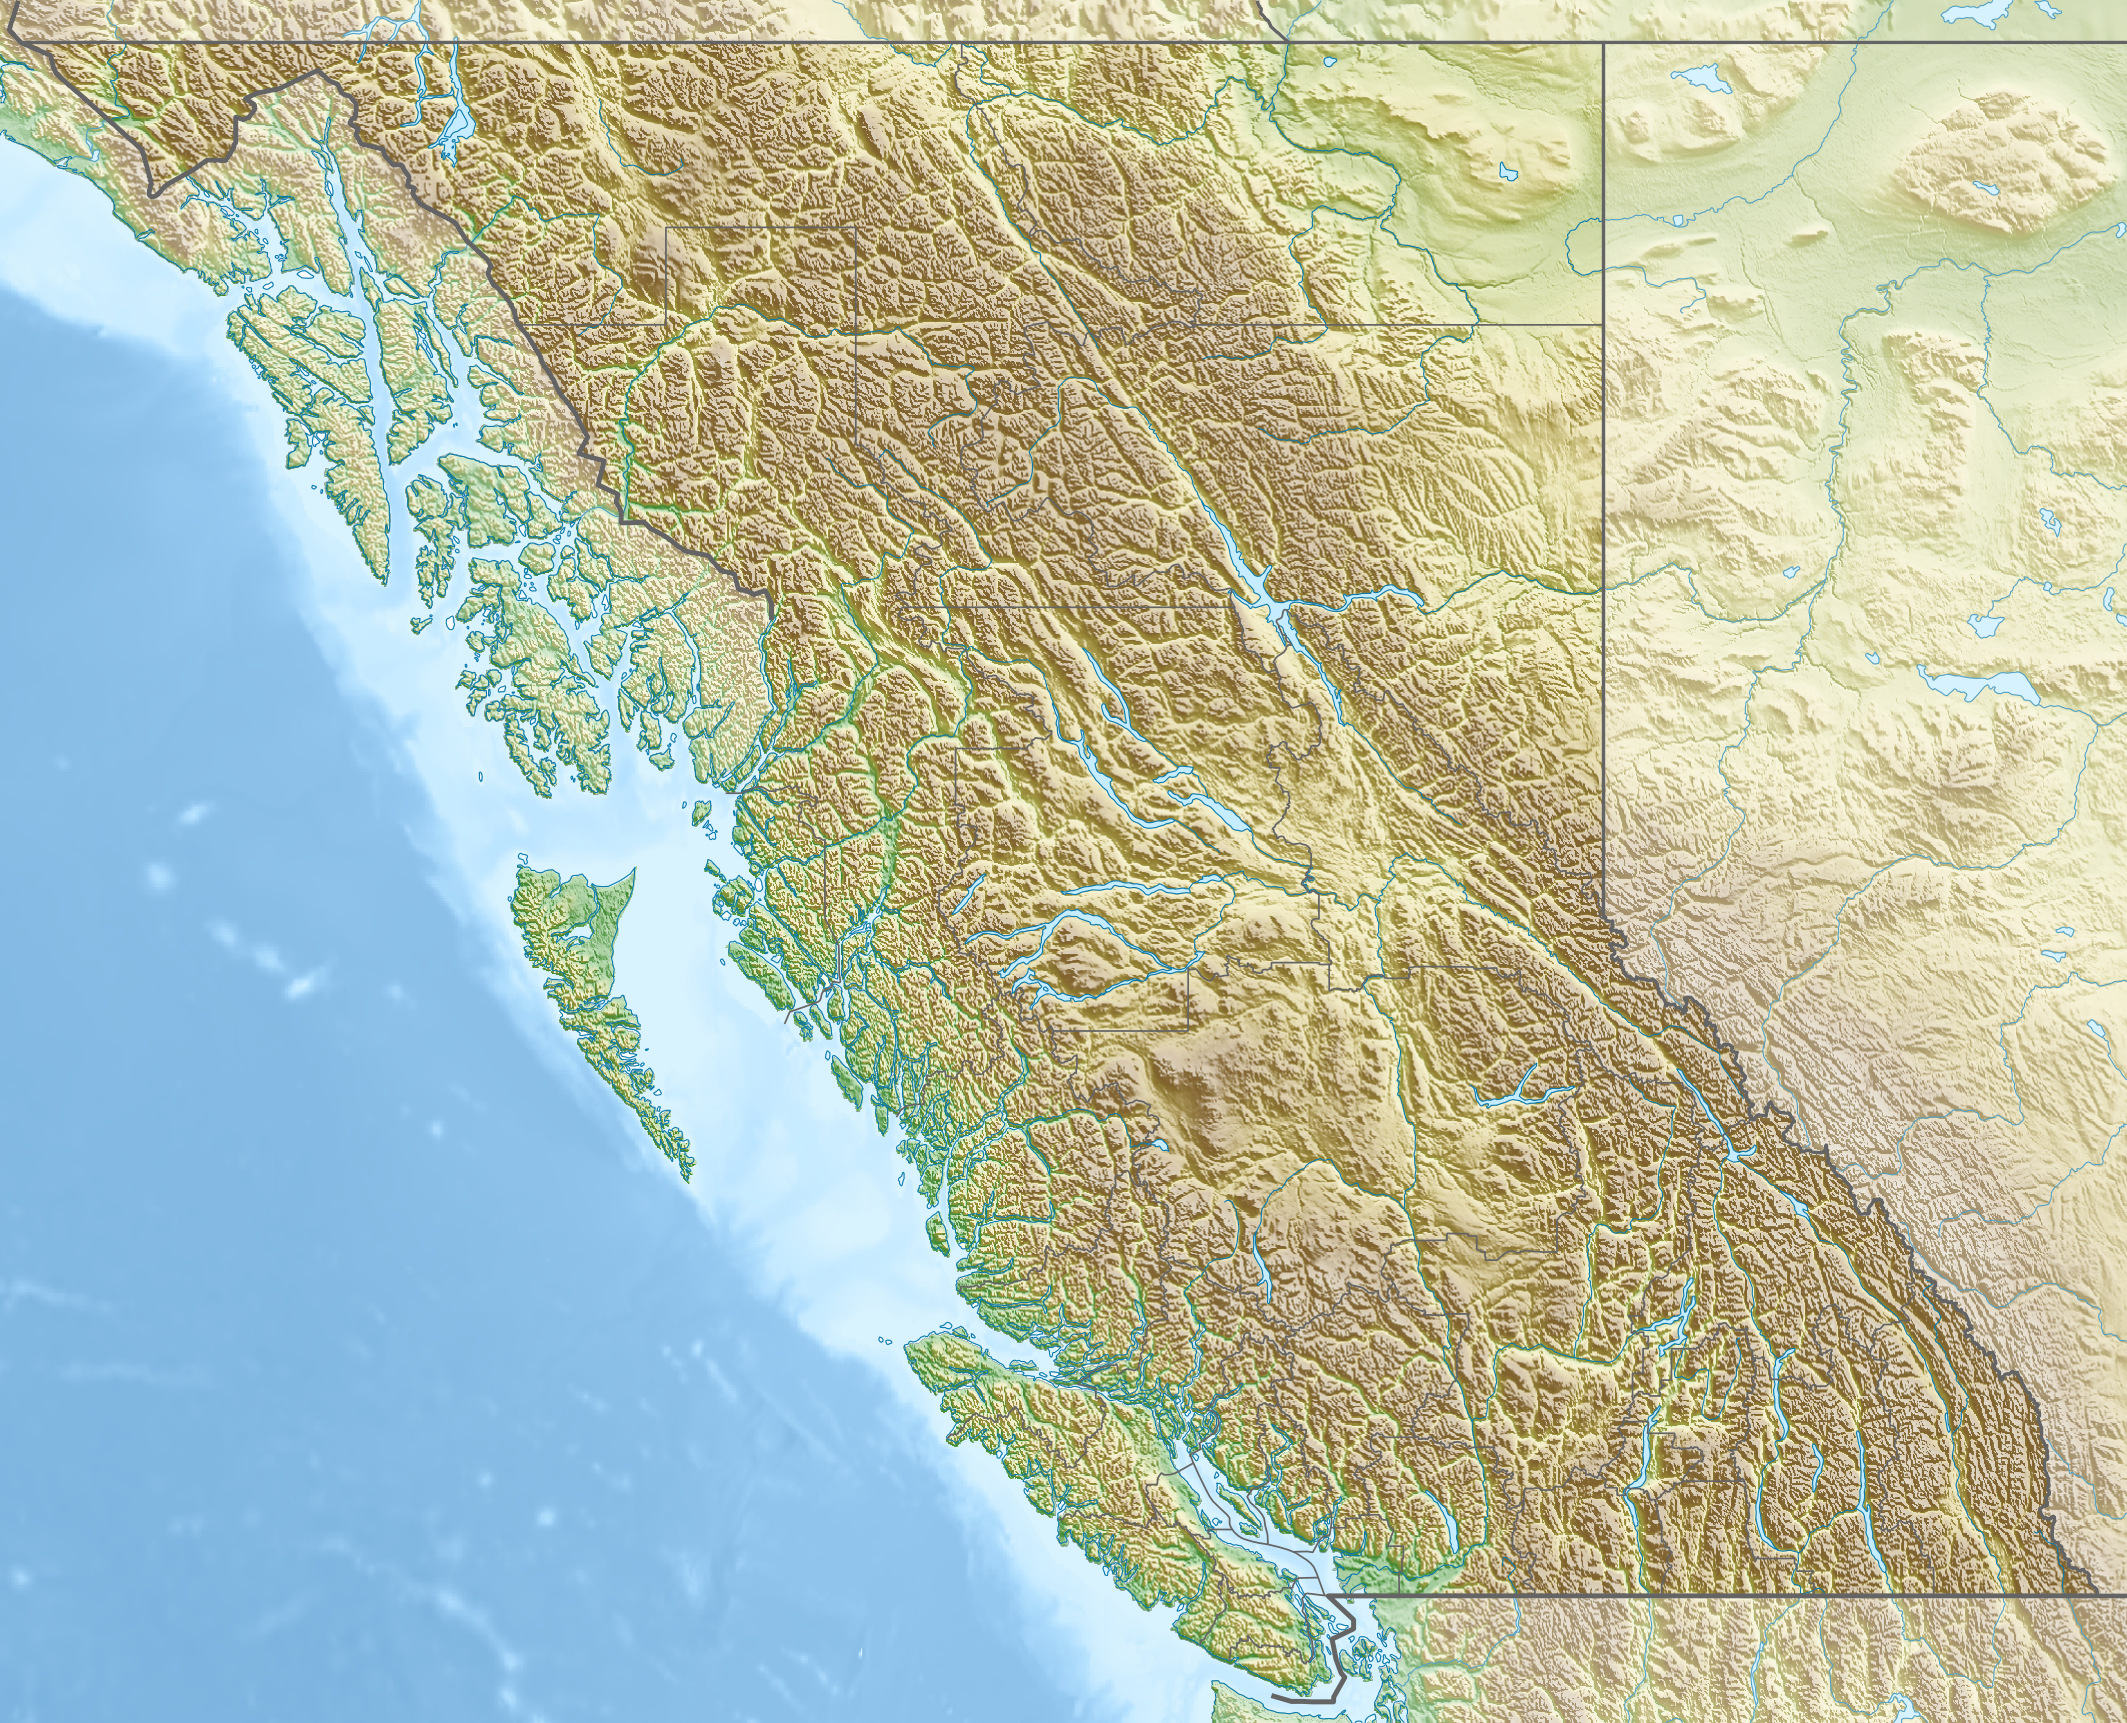 FileCanada British Columbia Relief Location Mapjpg Wikimedia - Relief map of canada